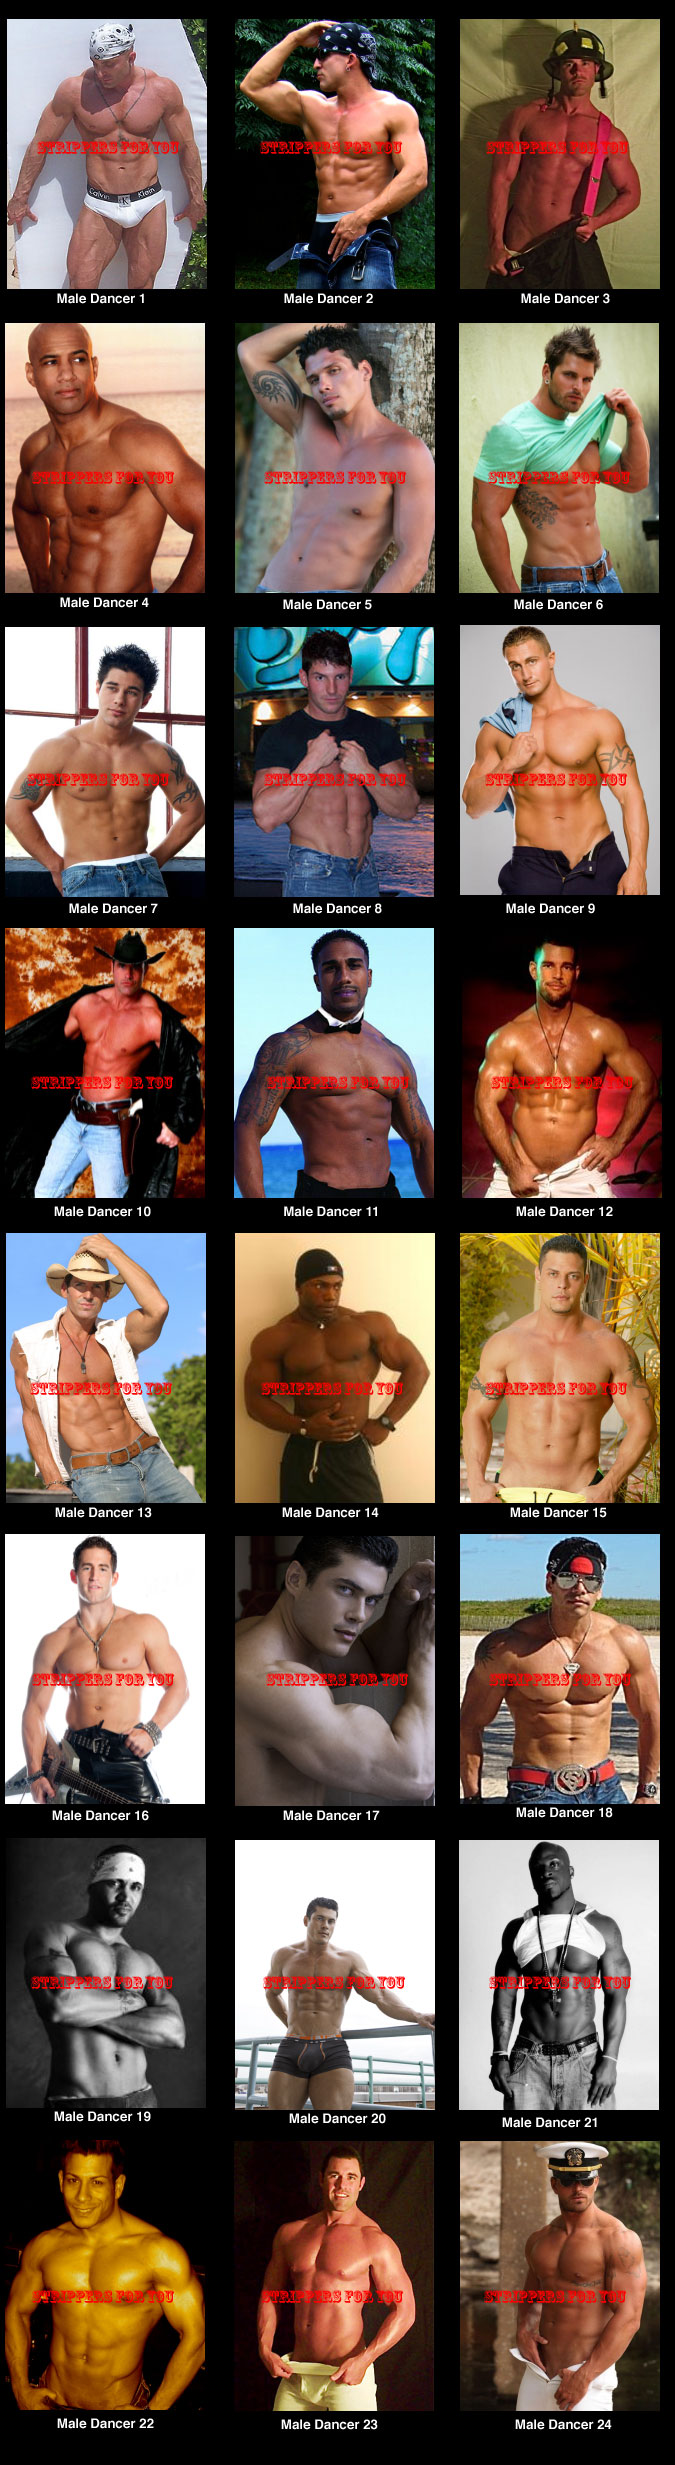 Columbus male strippers